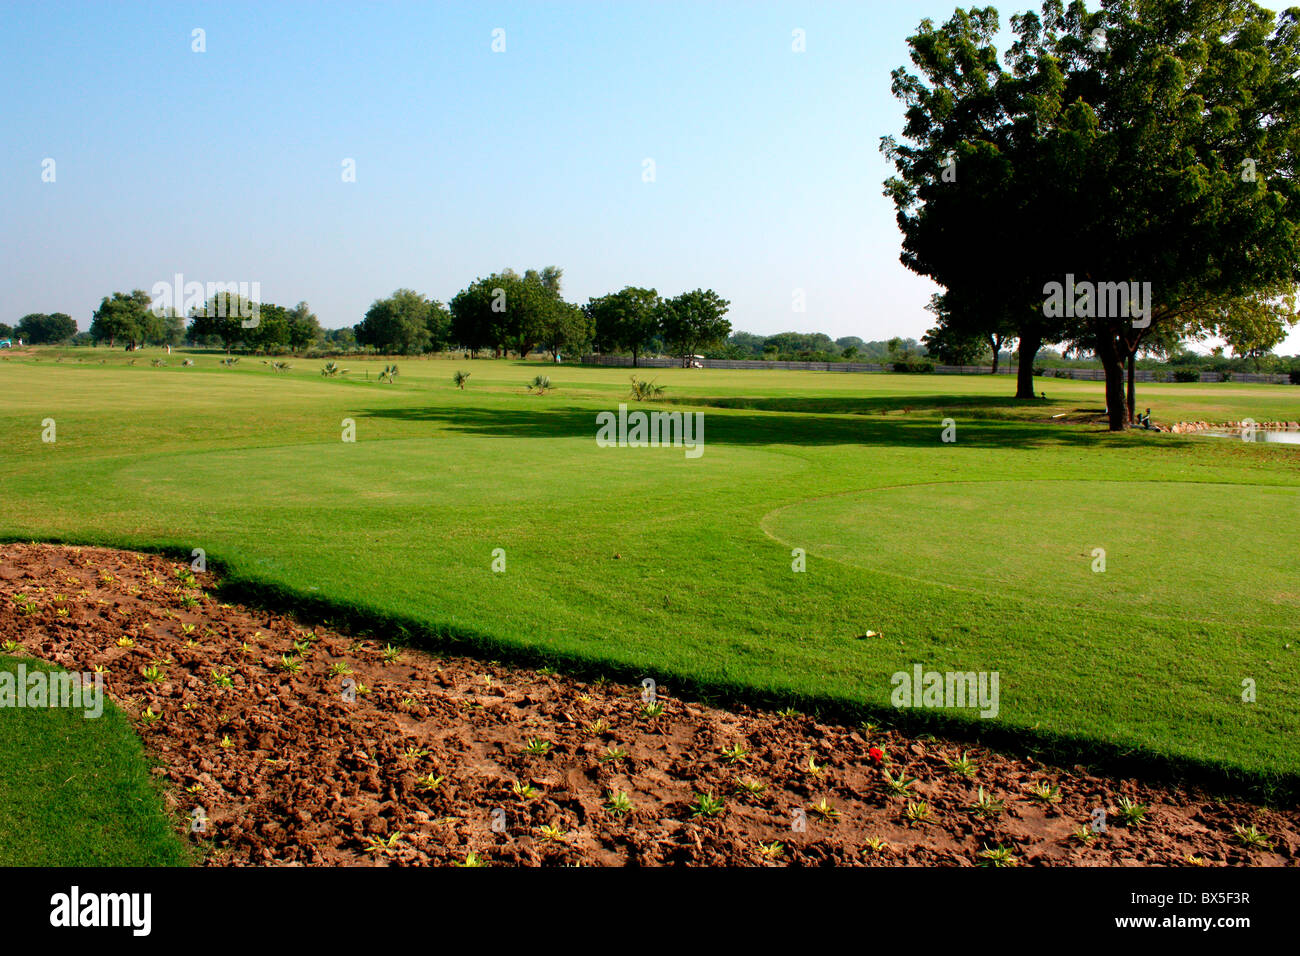 A view of Golf Course in Ahmedabad, India - Stock Image